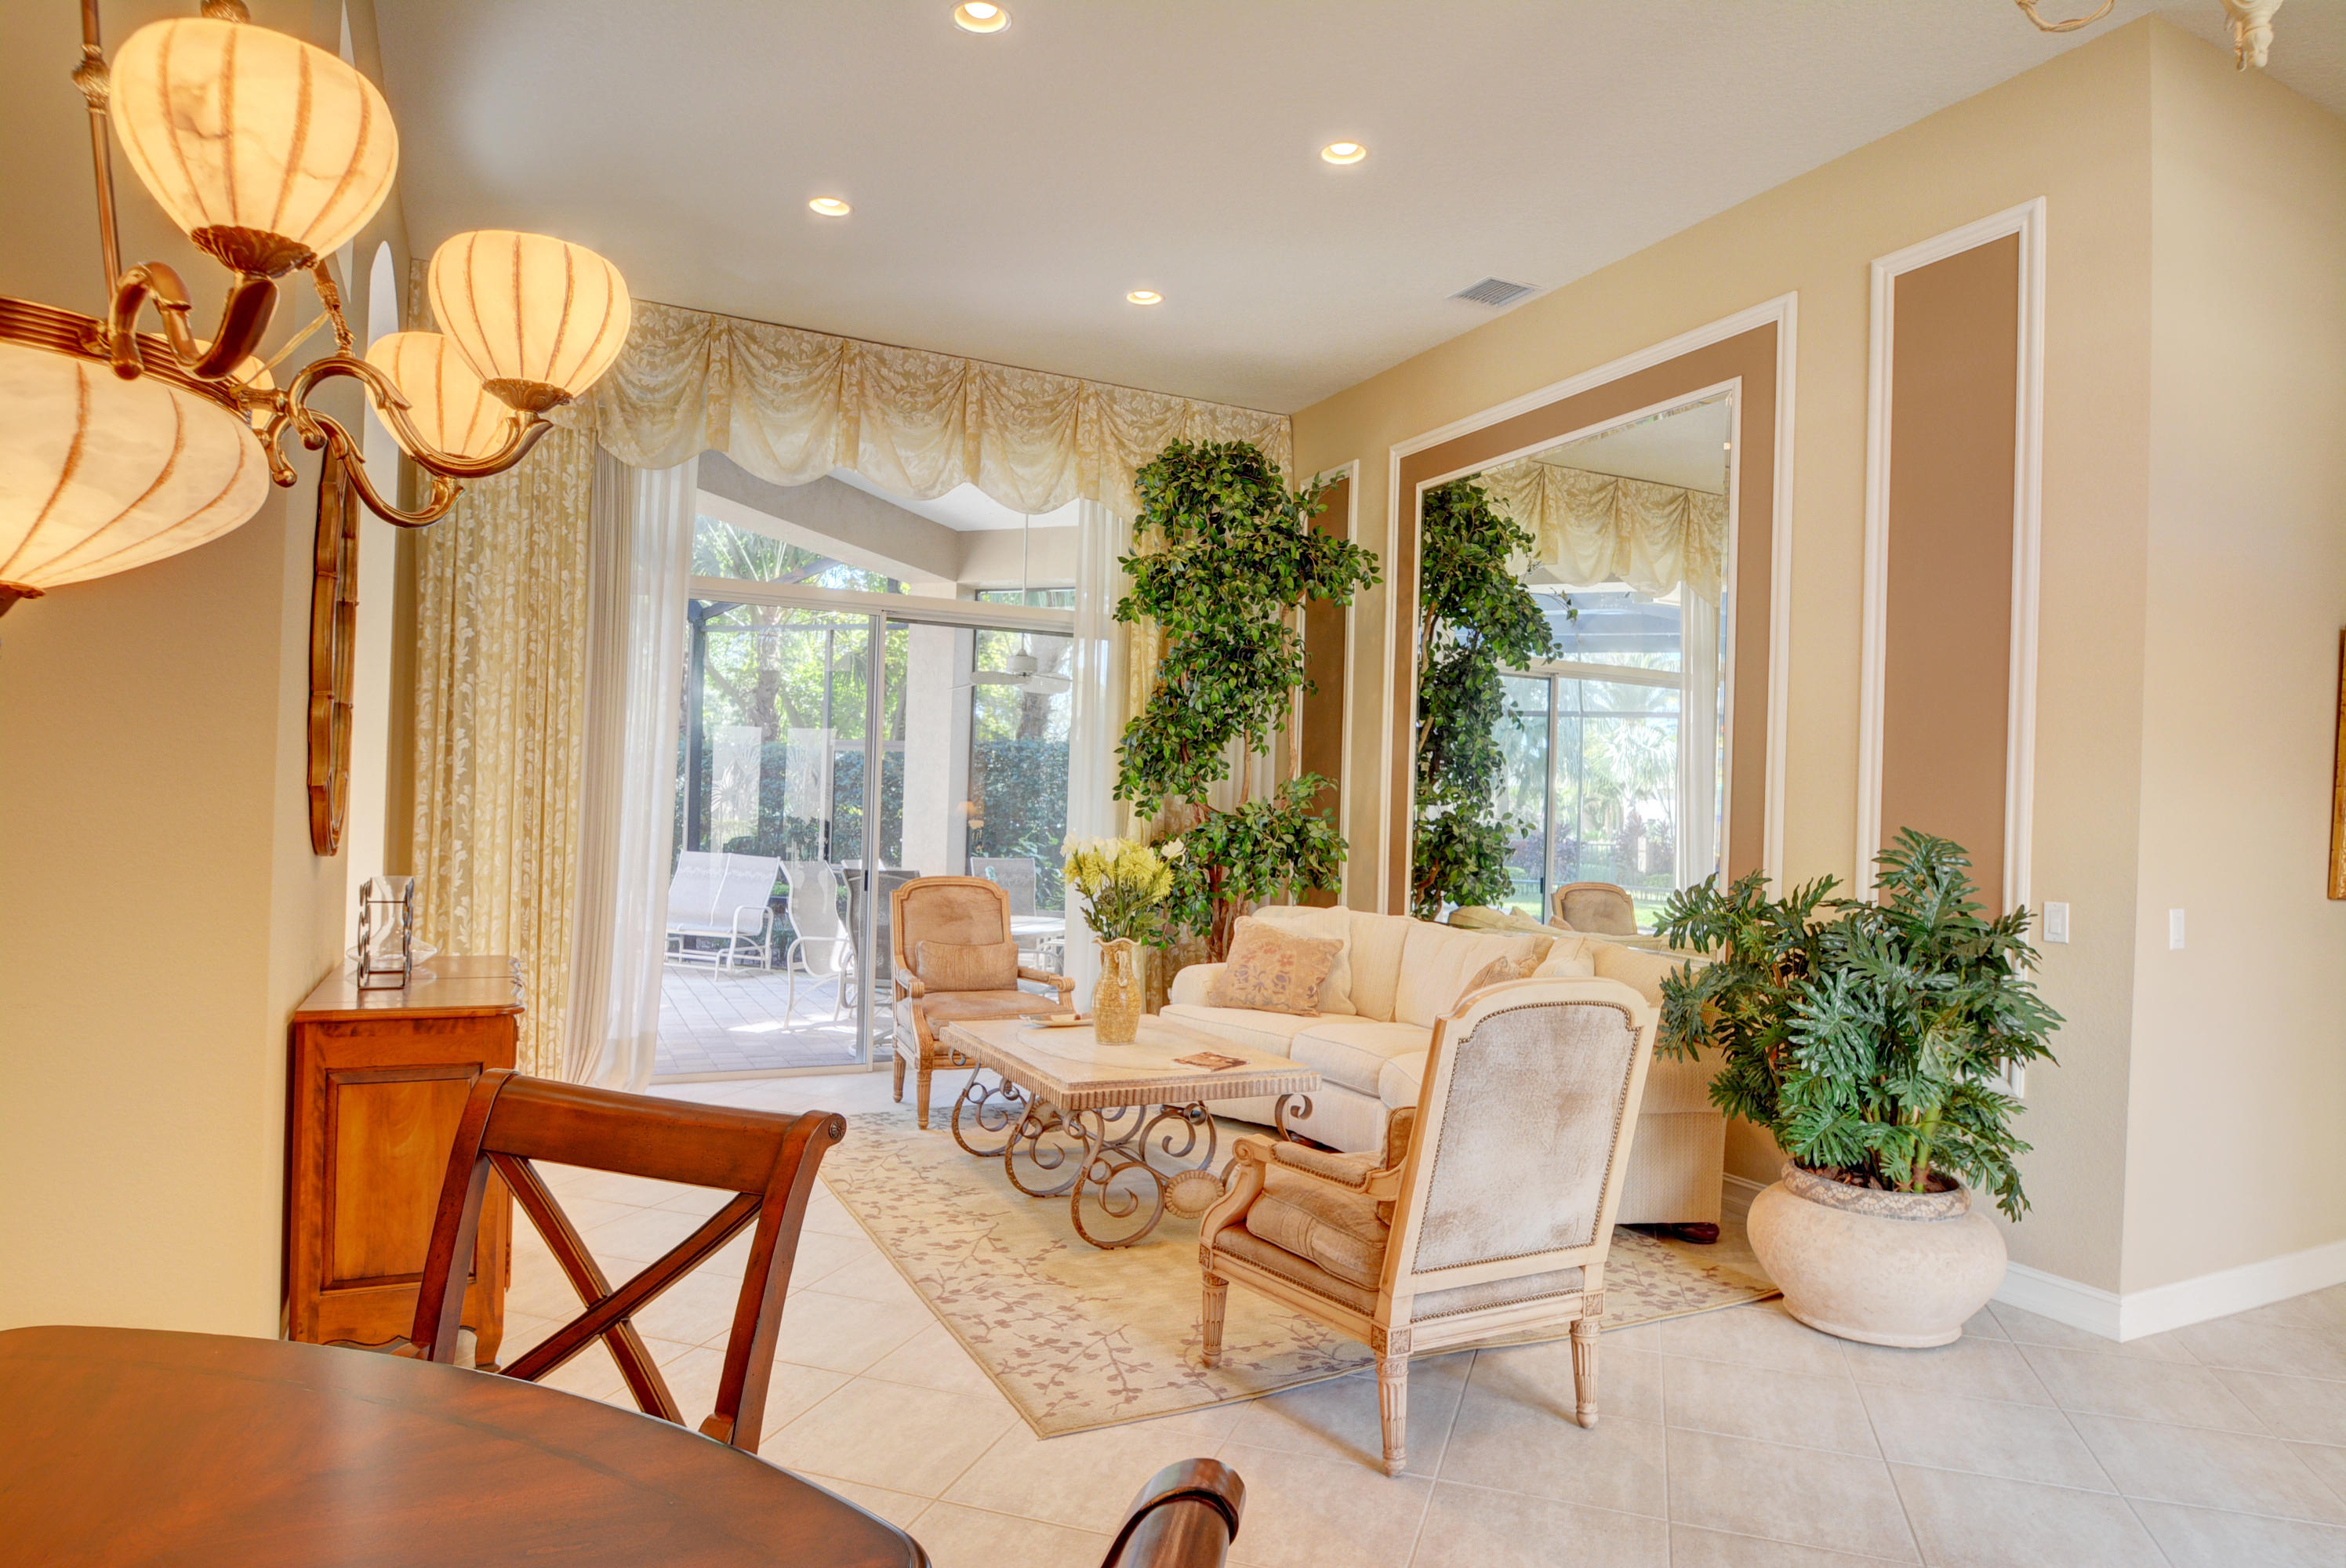 167 Orchid Cay Drive Palm Beach Gardens, FL 33418 small photo 16